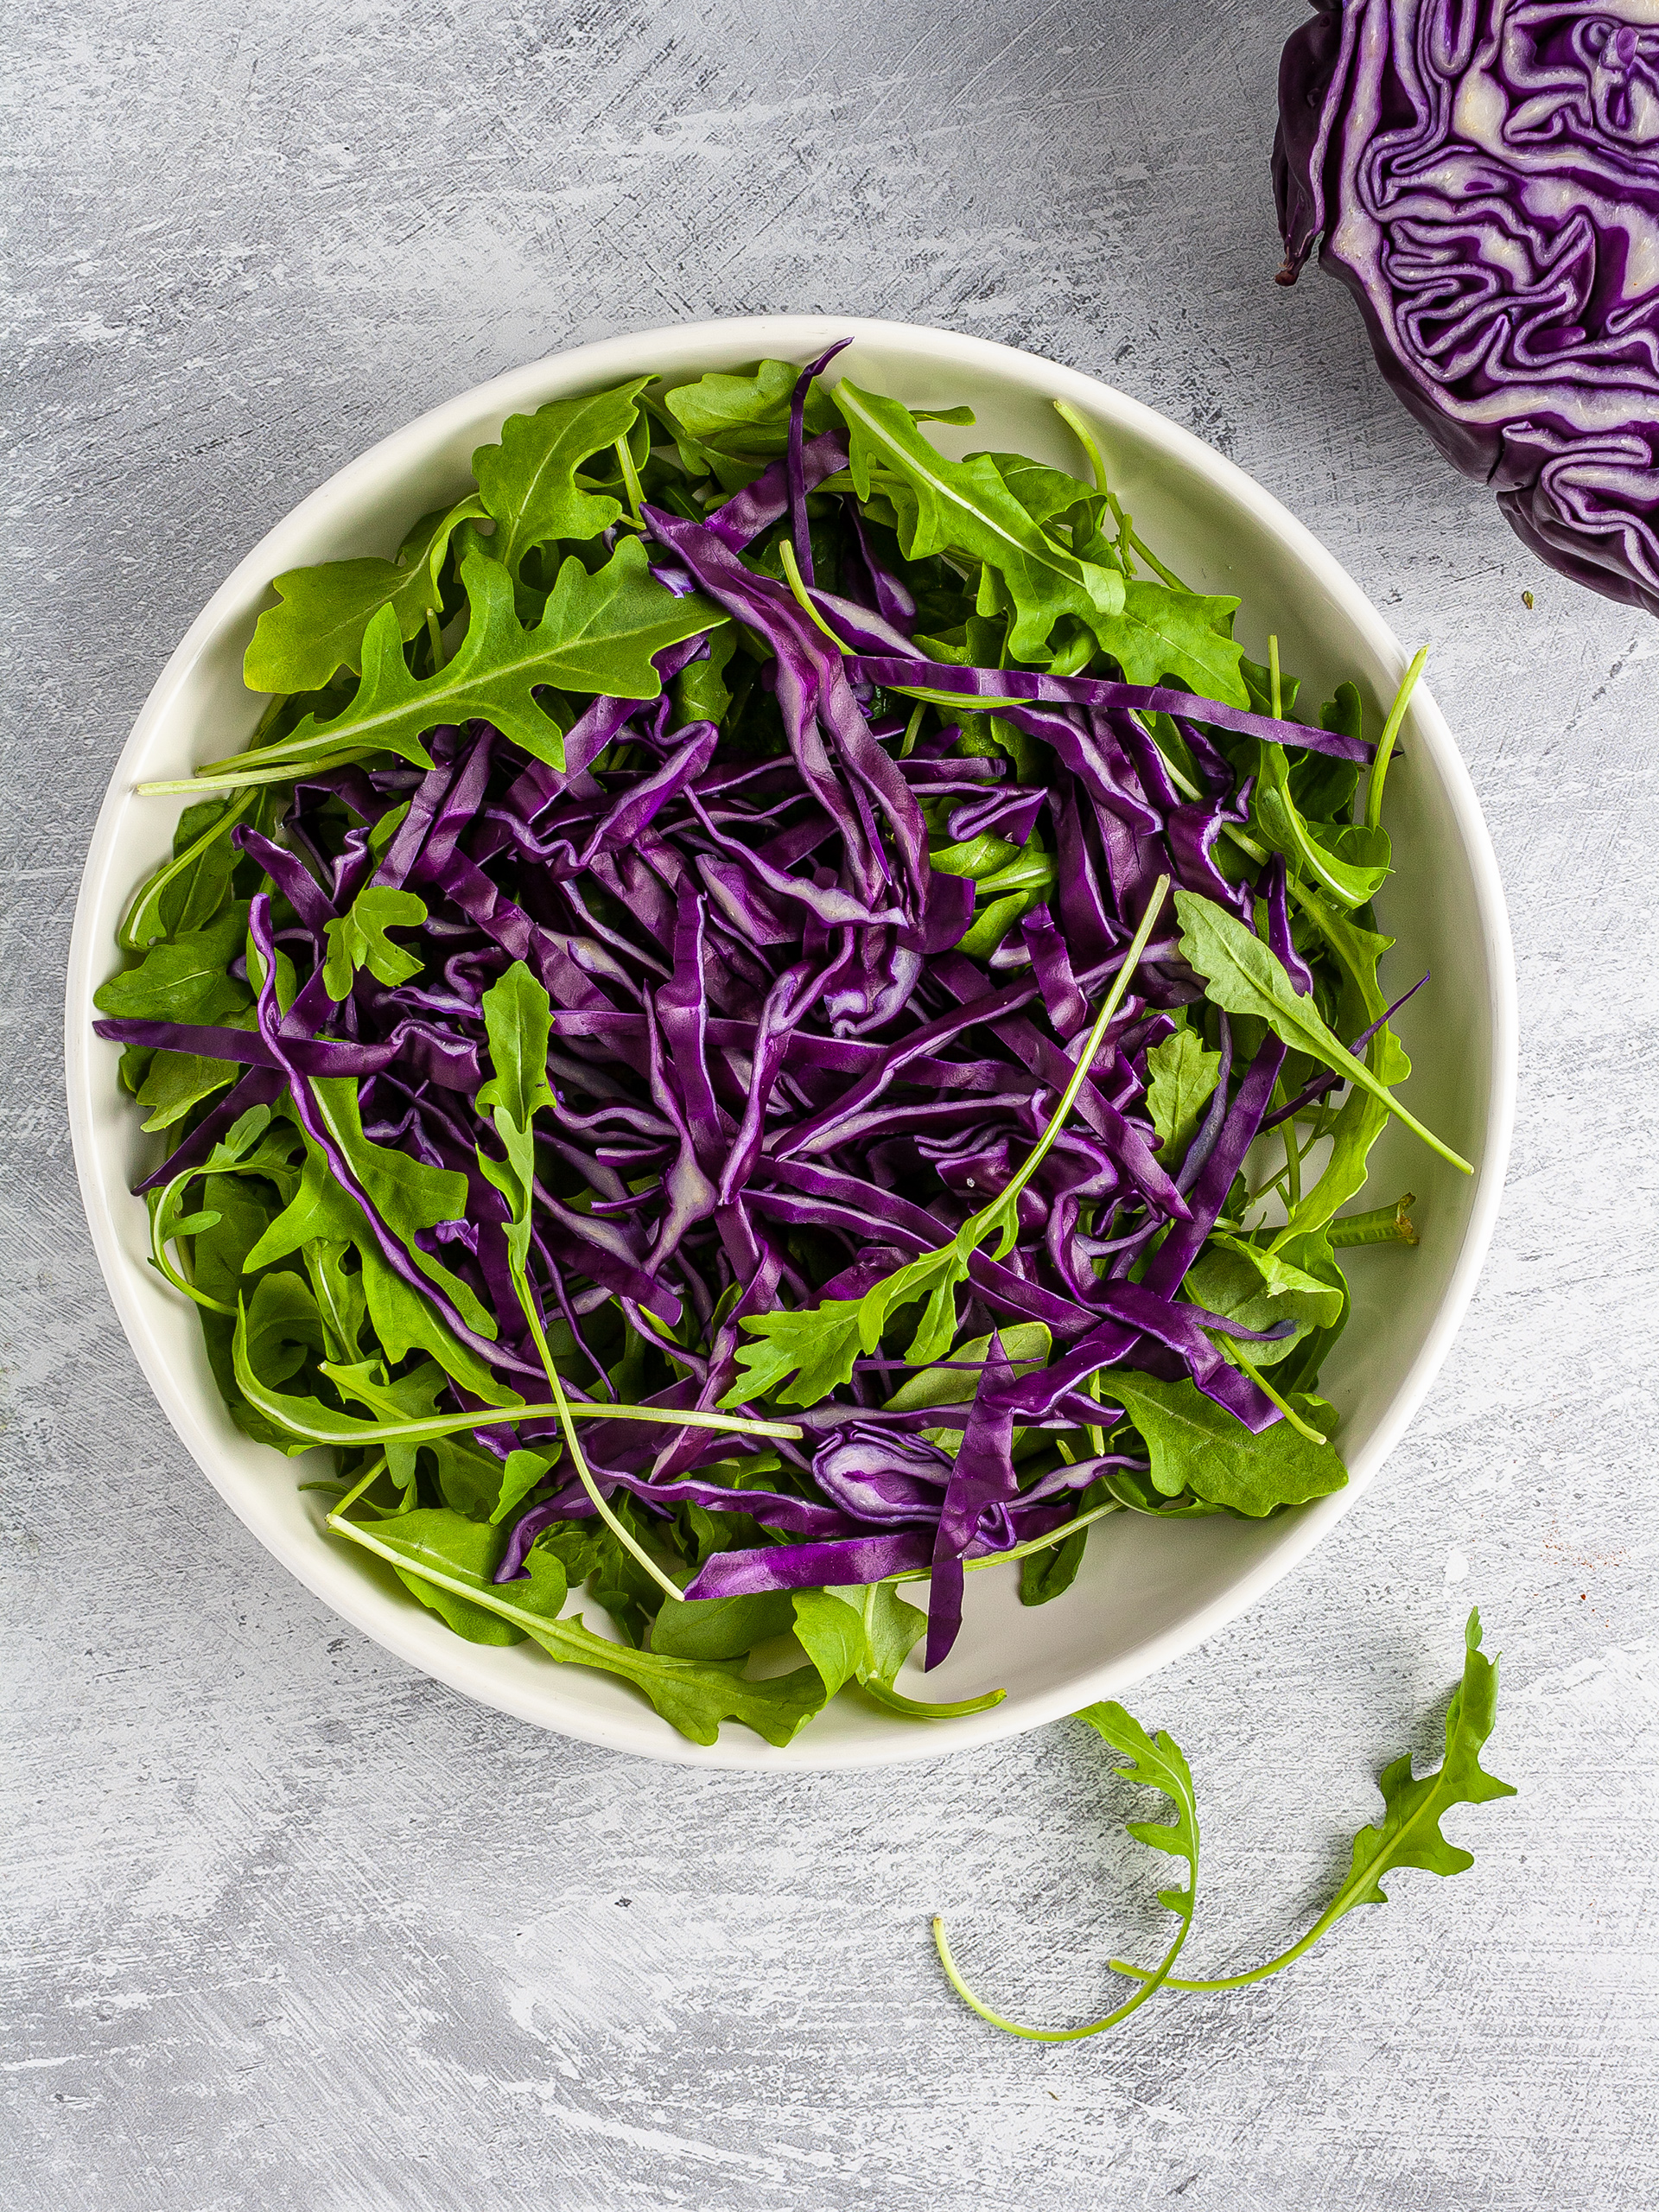 Rocket and red cabbage in a salad bowl